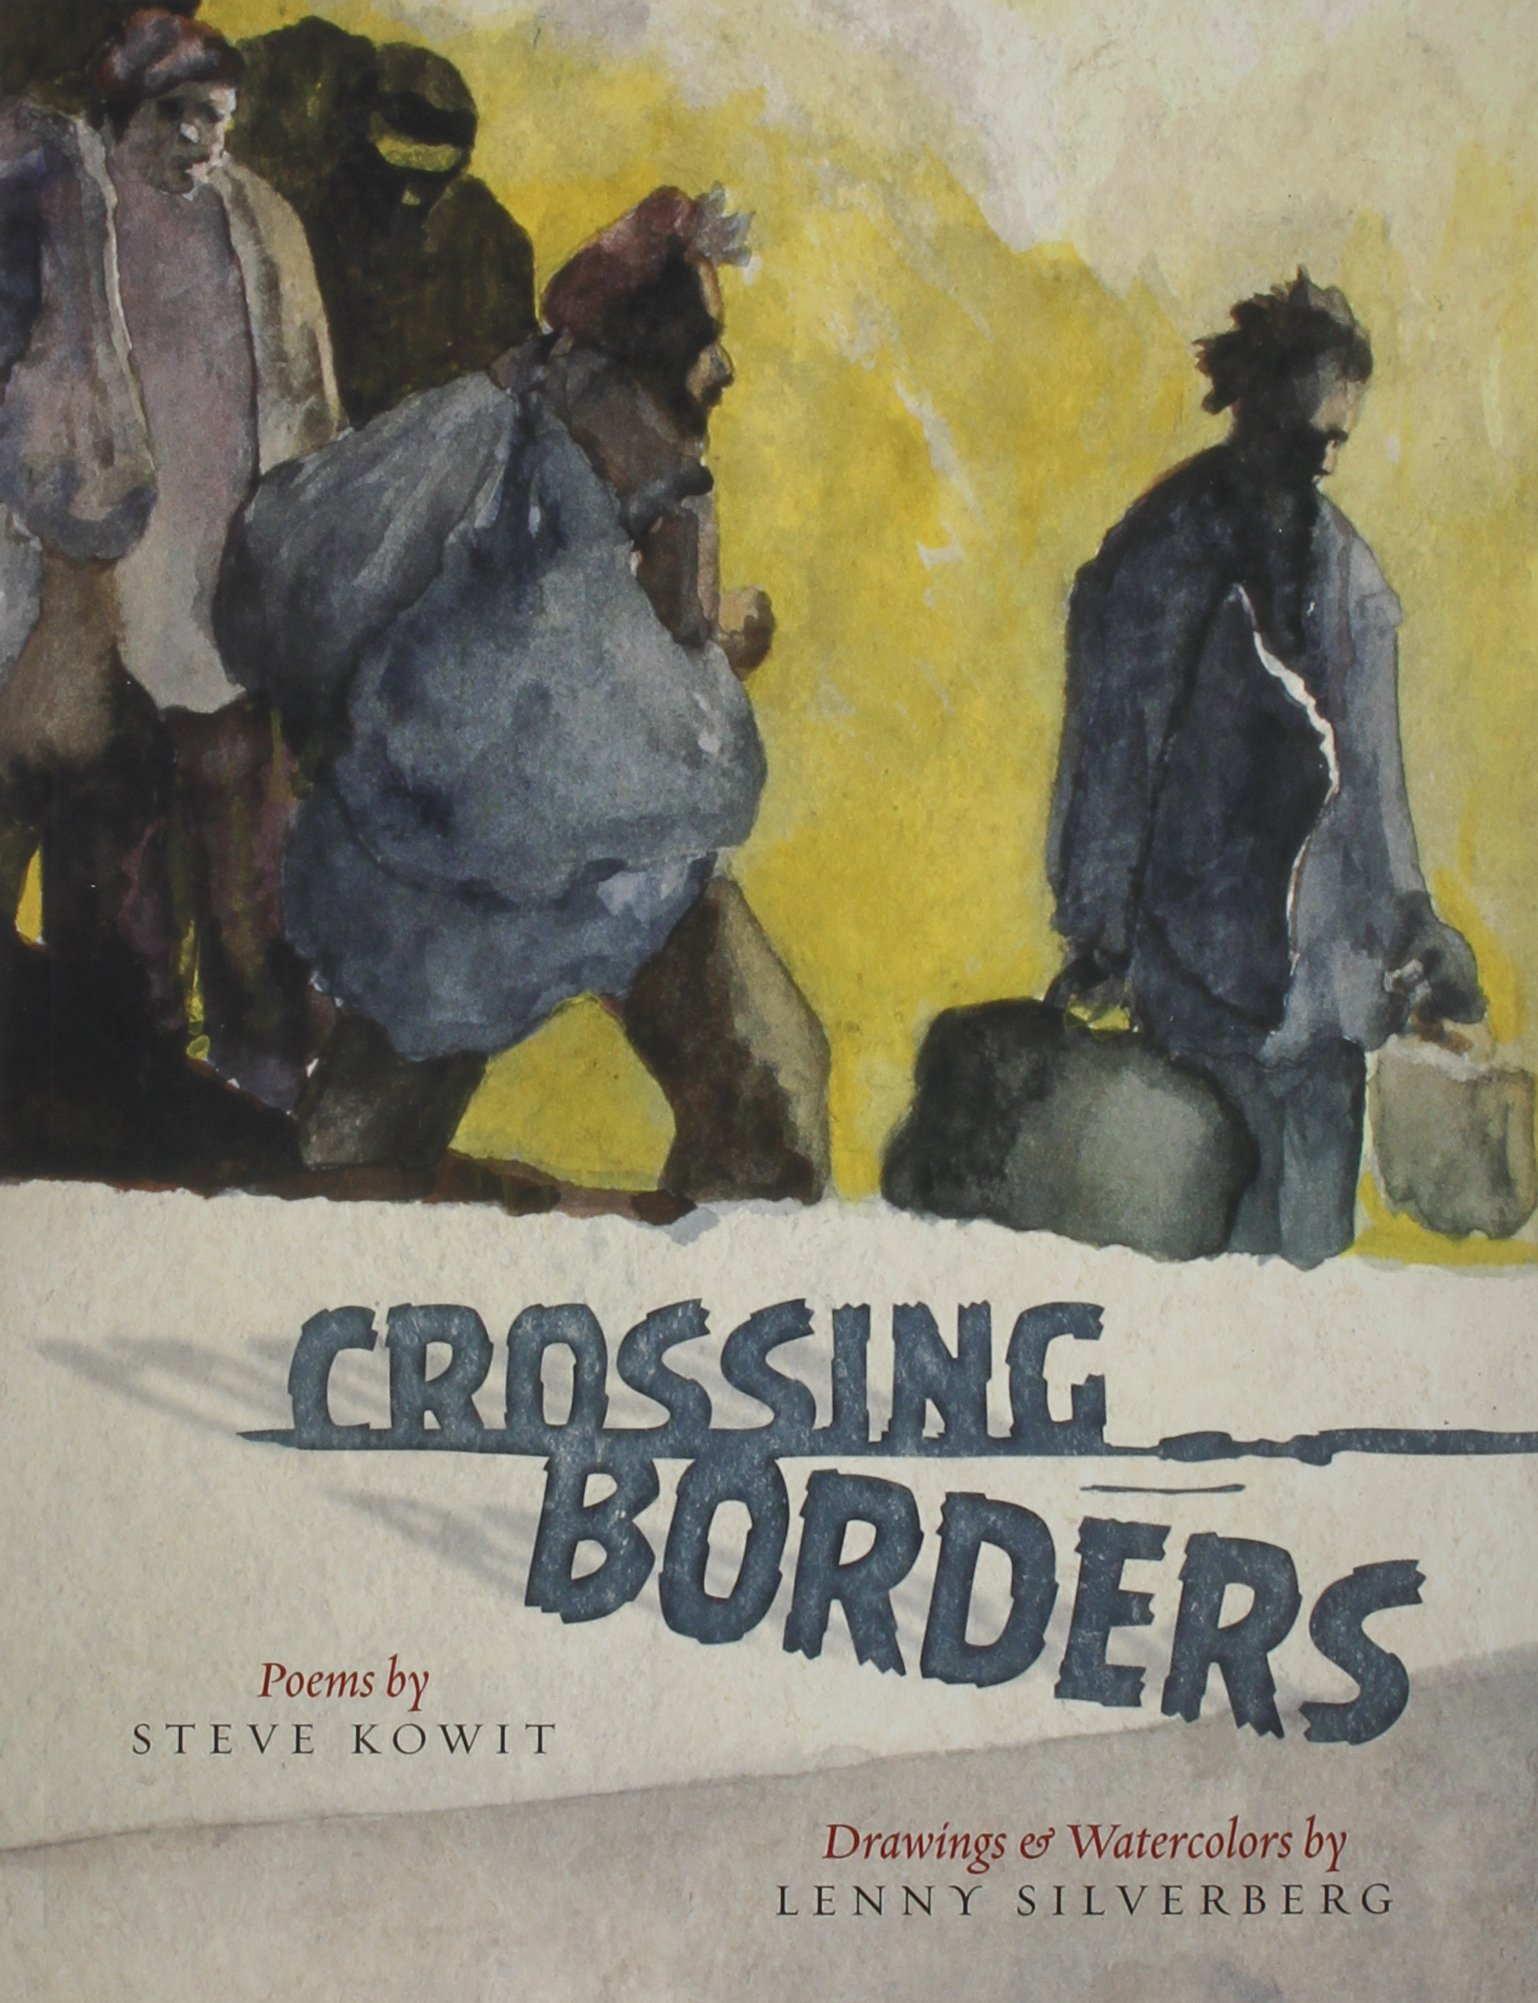 Cover photo of Crossing Borders by Steve Kowit and Lenny Silverberg